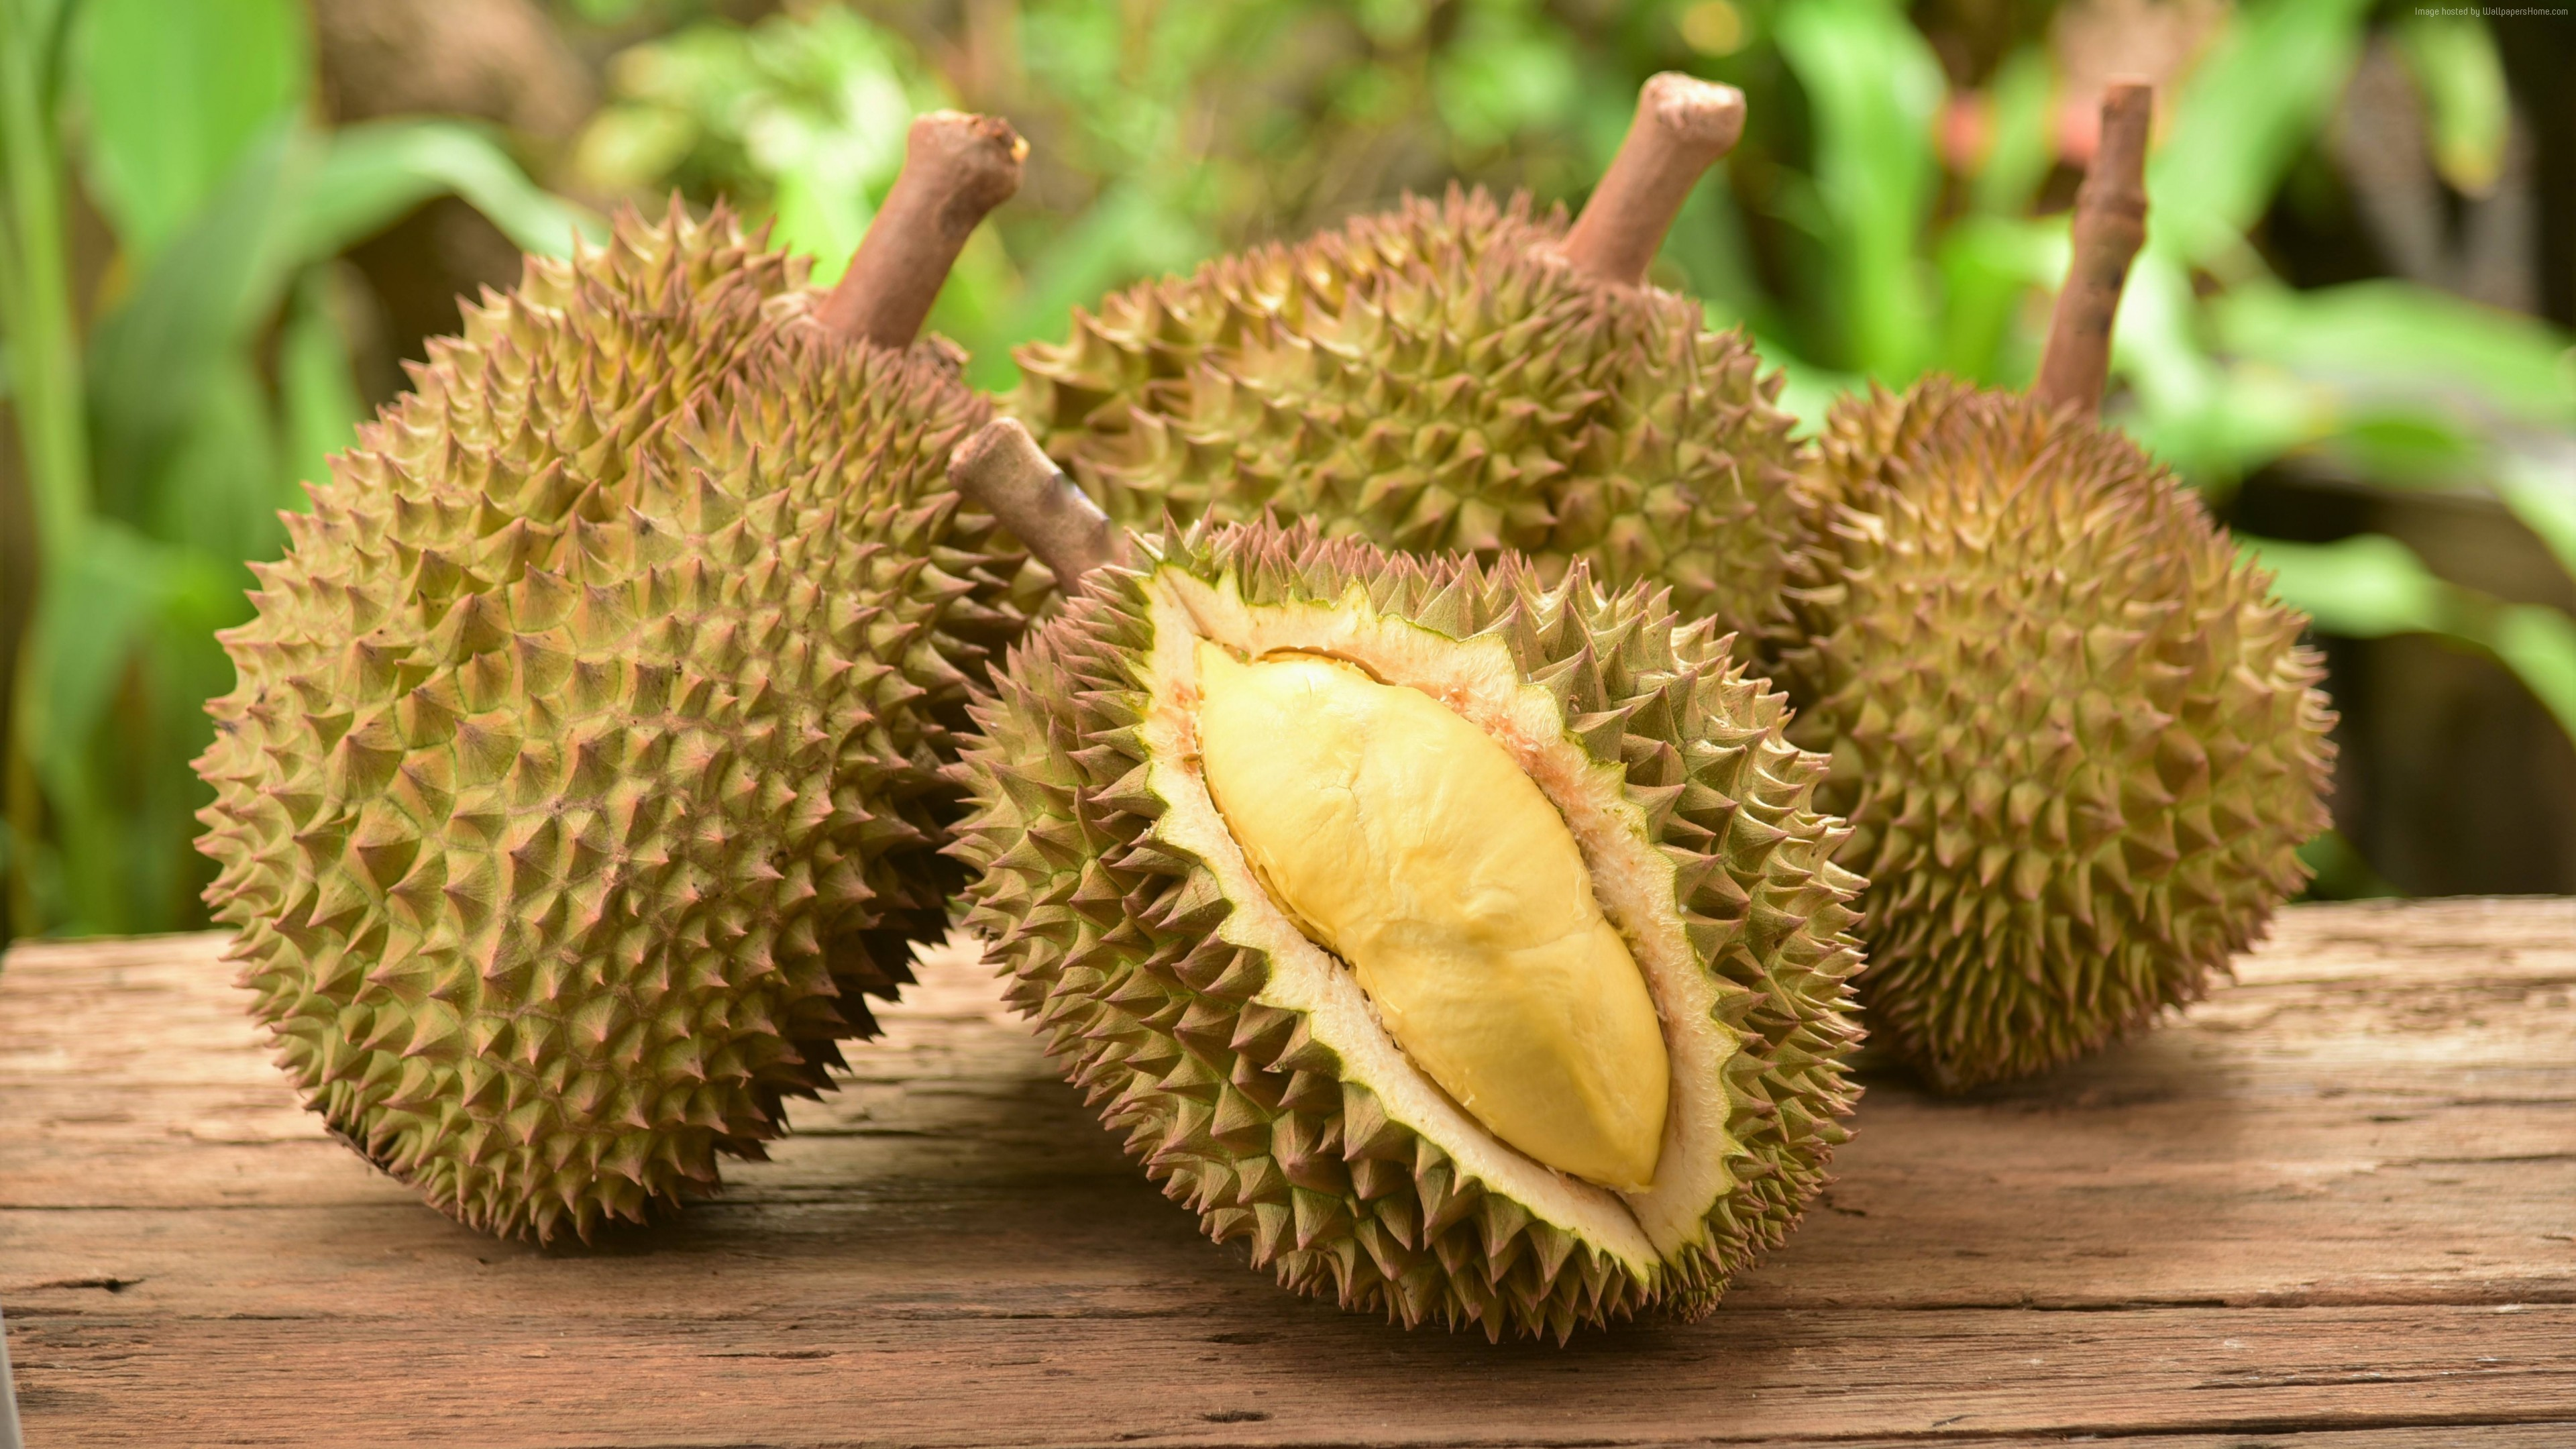 Wallpaper durian, fruit, 5k, Food